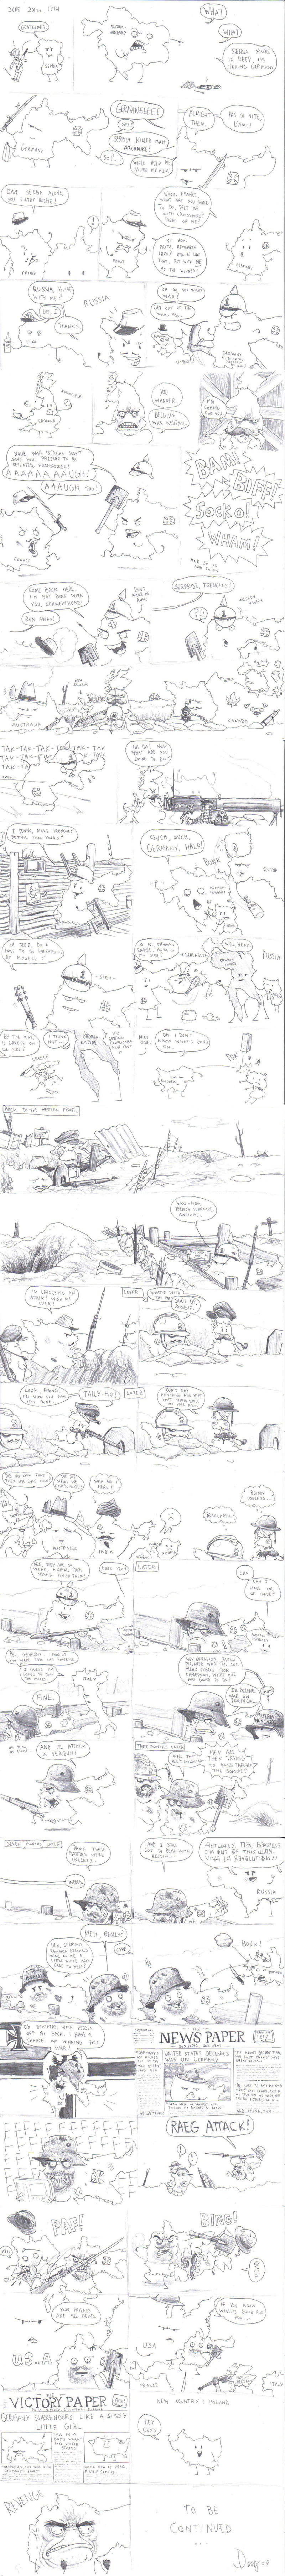 World War One: Simple Version by AngusBurgers